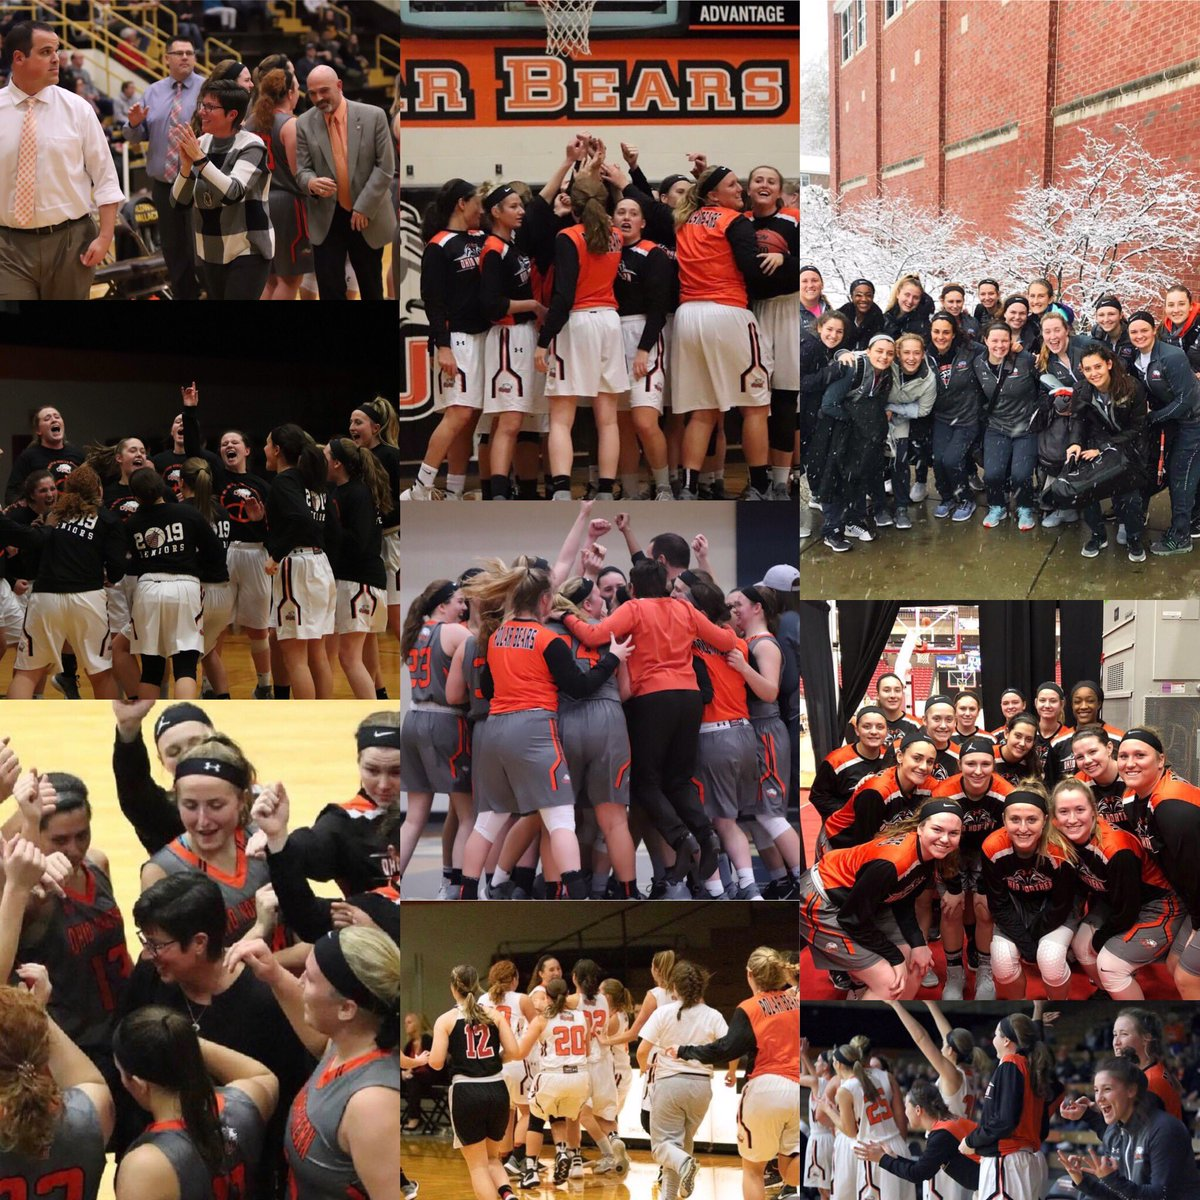 What a ride it has been. Everyone counted us out early but we stayed together the ENTIRE season. We want to thank all of our ONU family for the love and support they've given us this year. We are so grateful for this incredible journey and sad to see it end! #BetterTogether<br>http://pic.twitter.com/ClW6EfDUCK